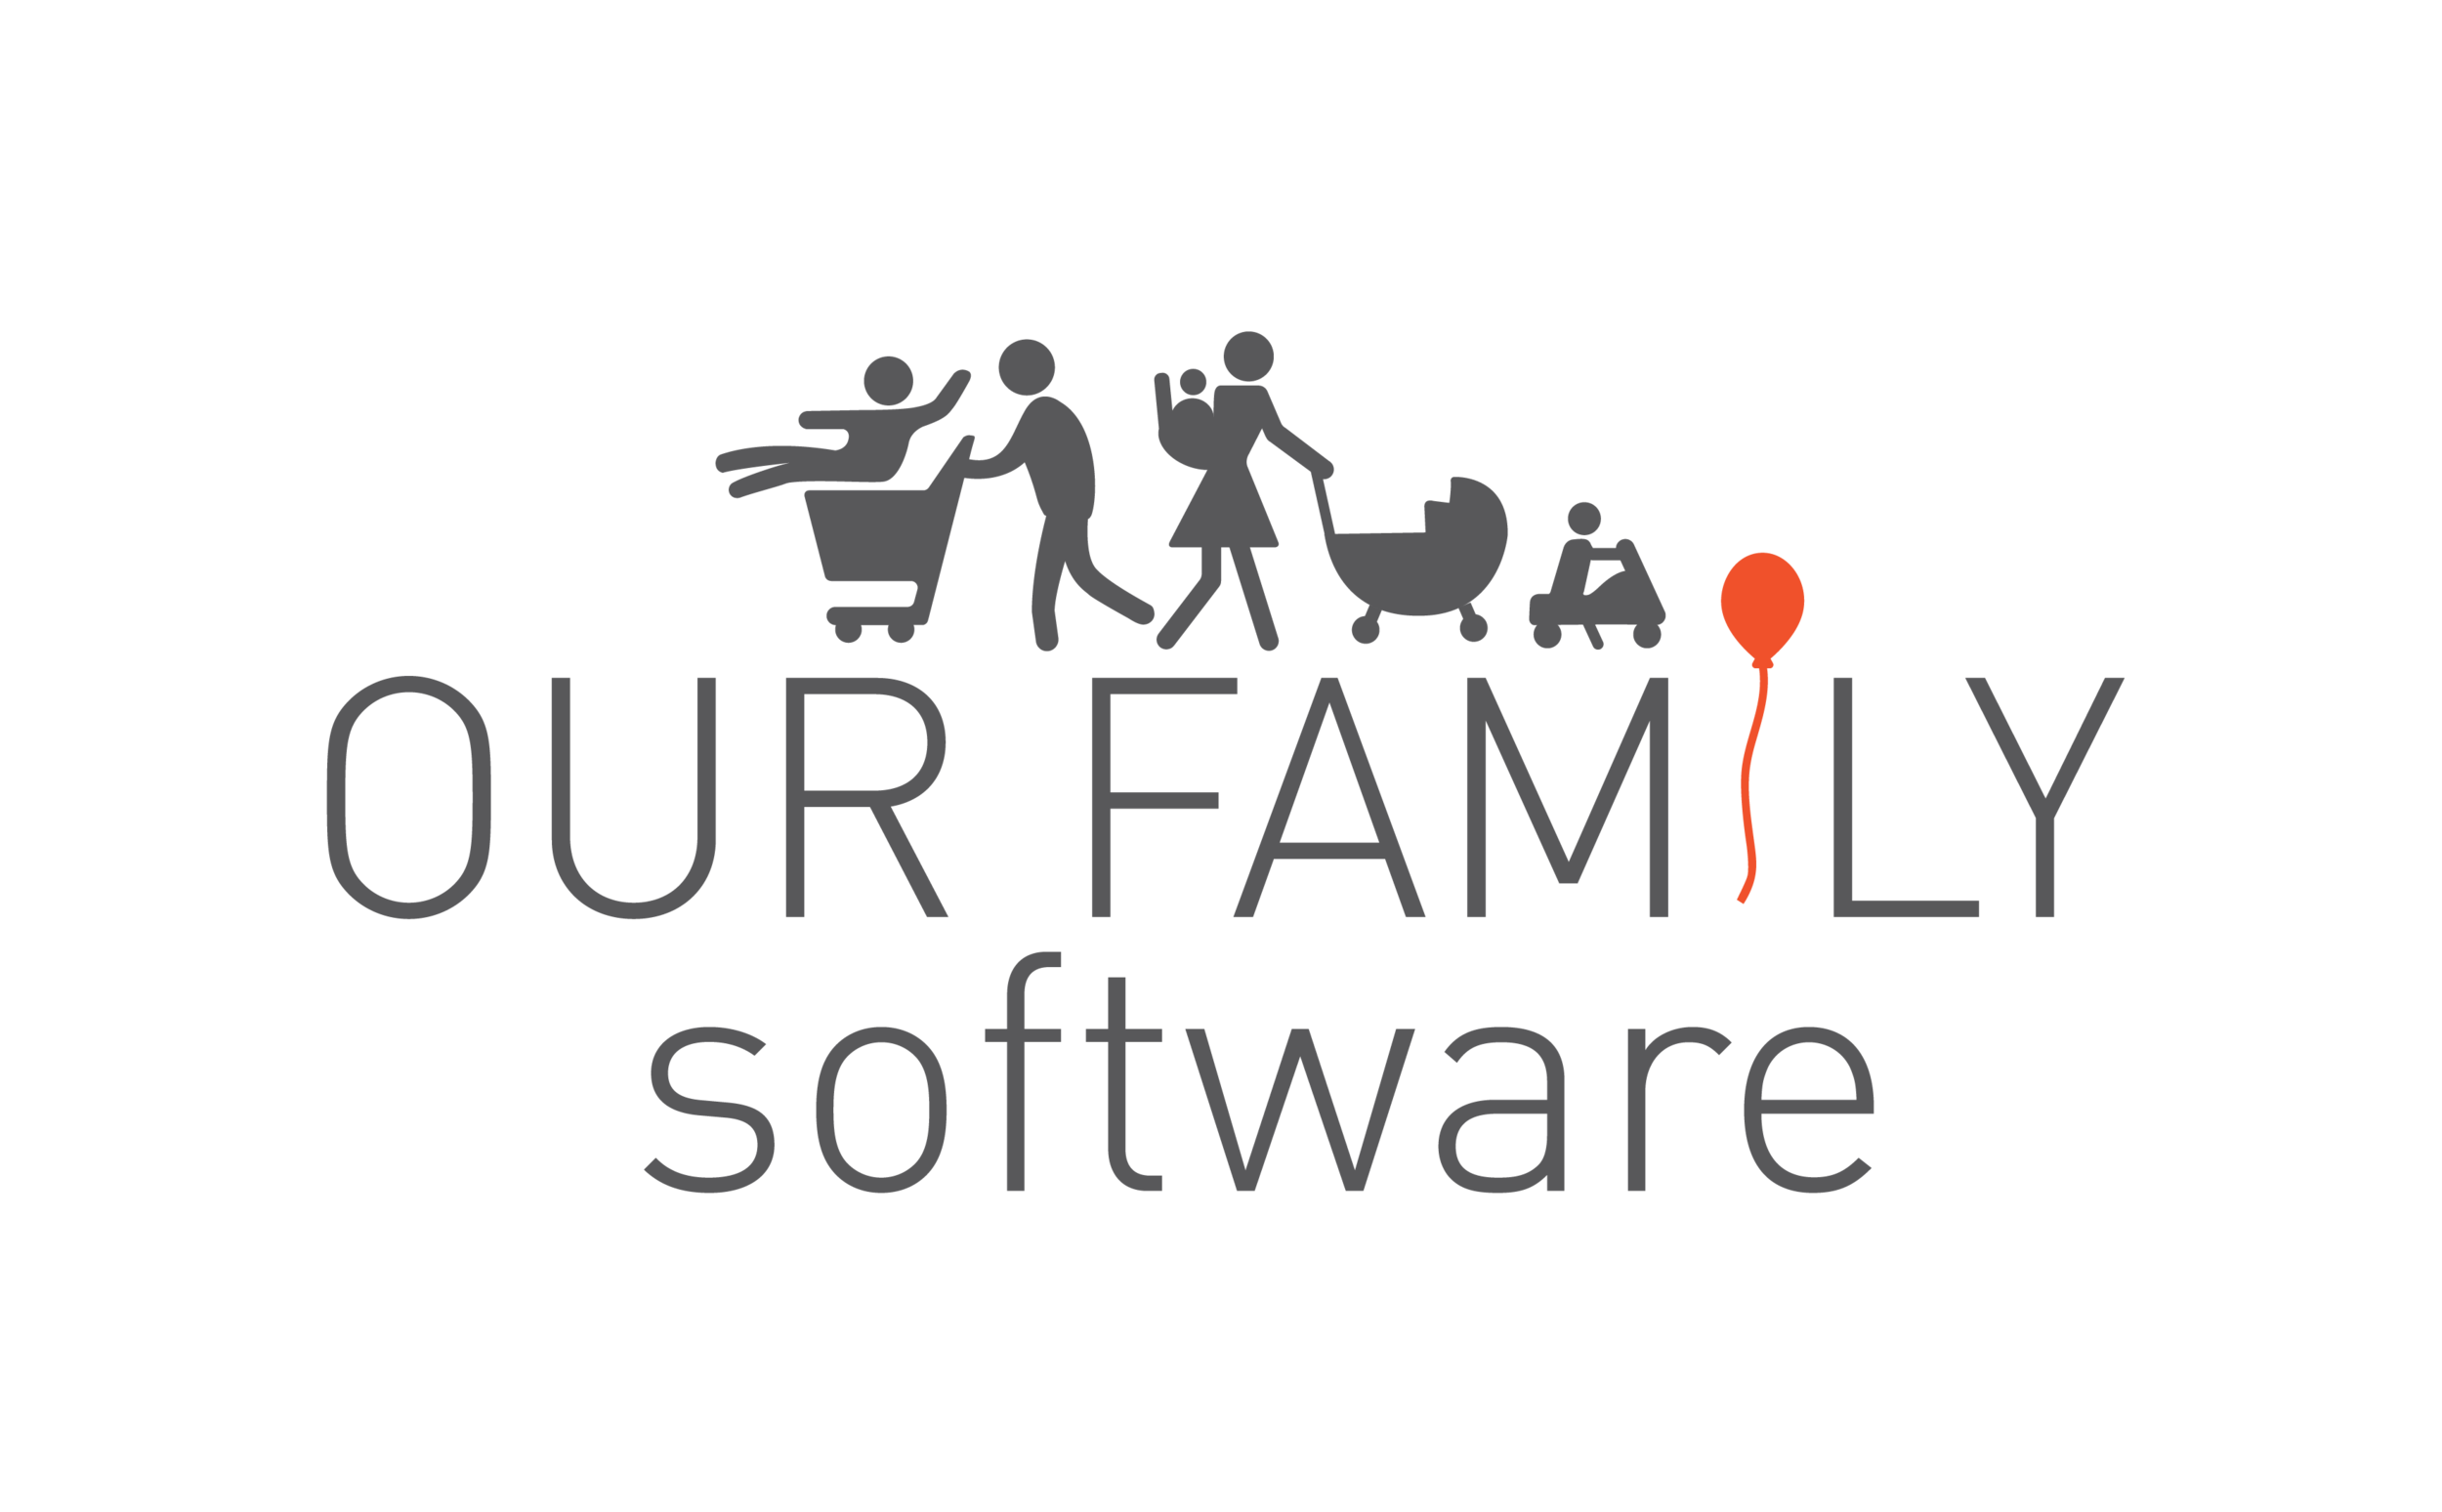 Our-Family-software_updated_logo-01 v.2.png